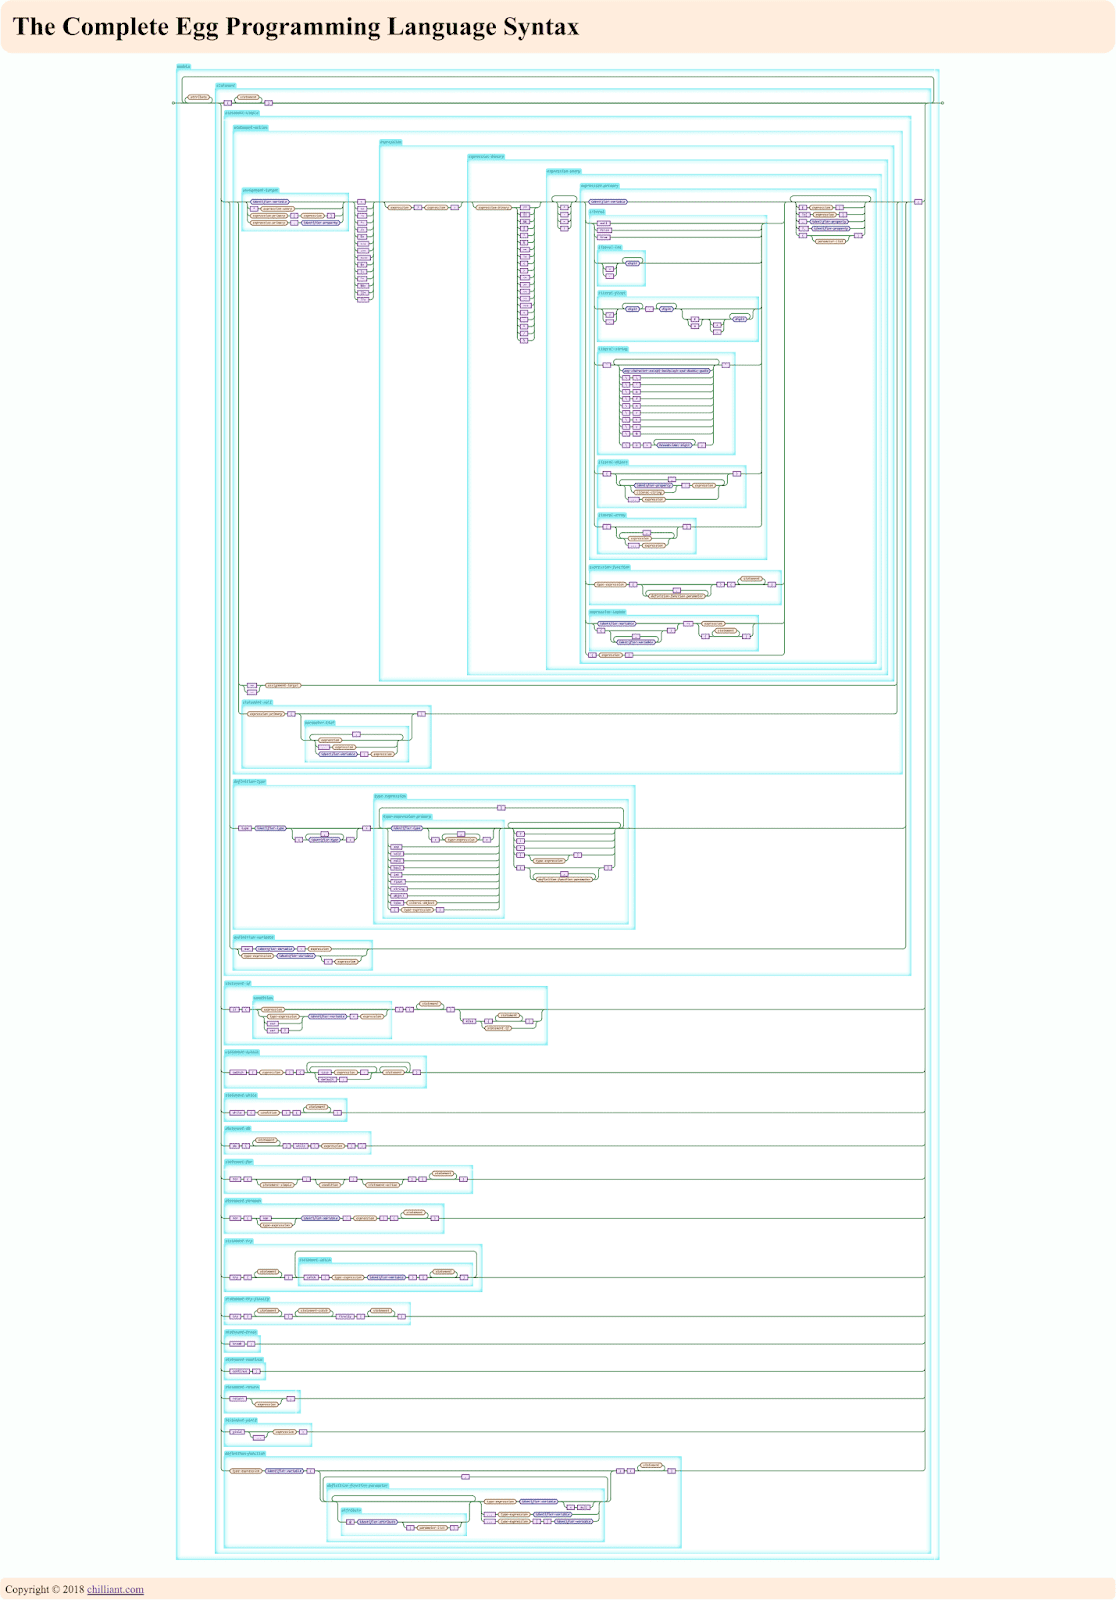 hight resolution of as mentioned last time i ve been working on a poster for the complete egg programming language syntax as a railroad diagram i finally managed to squeeze